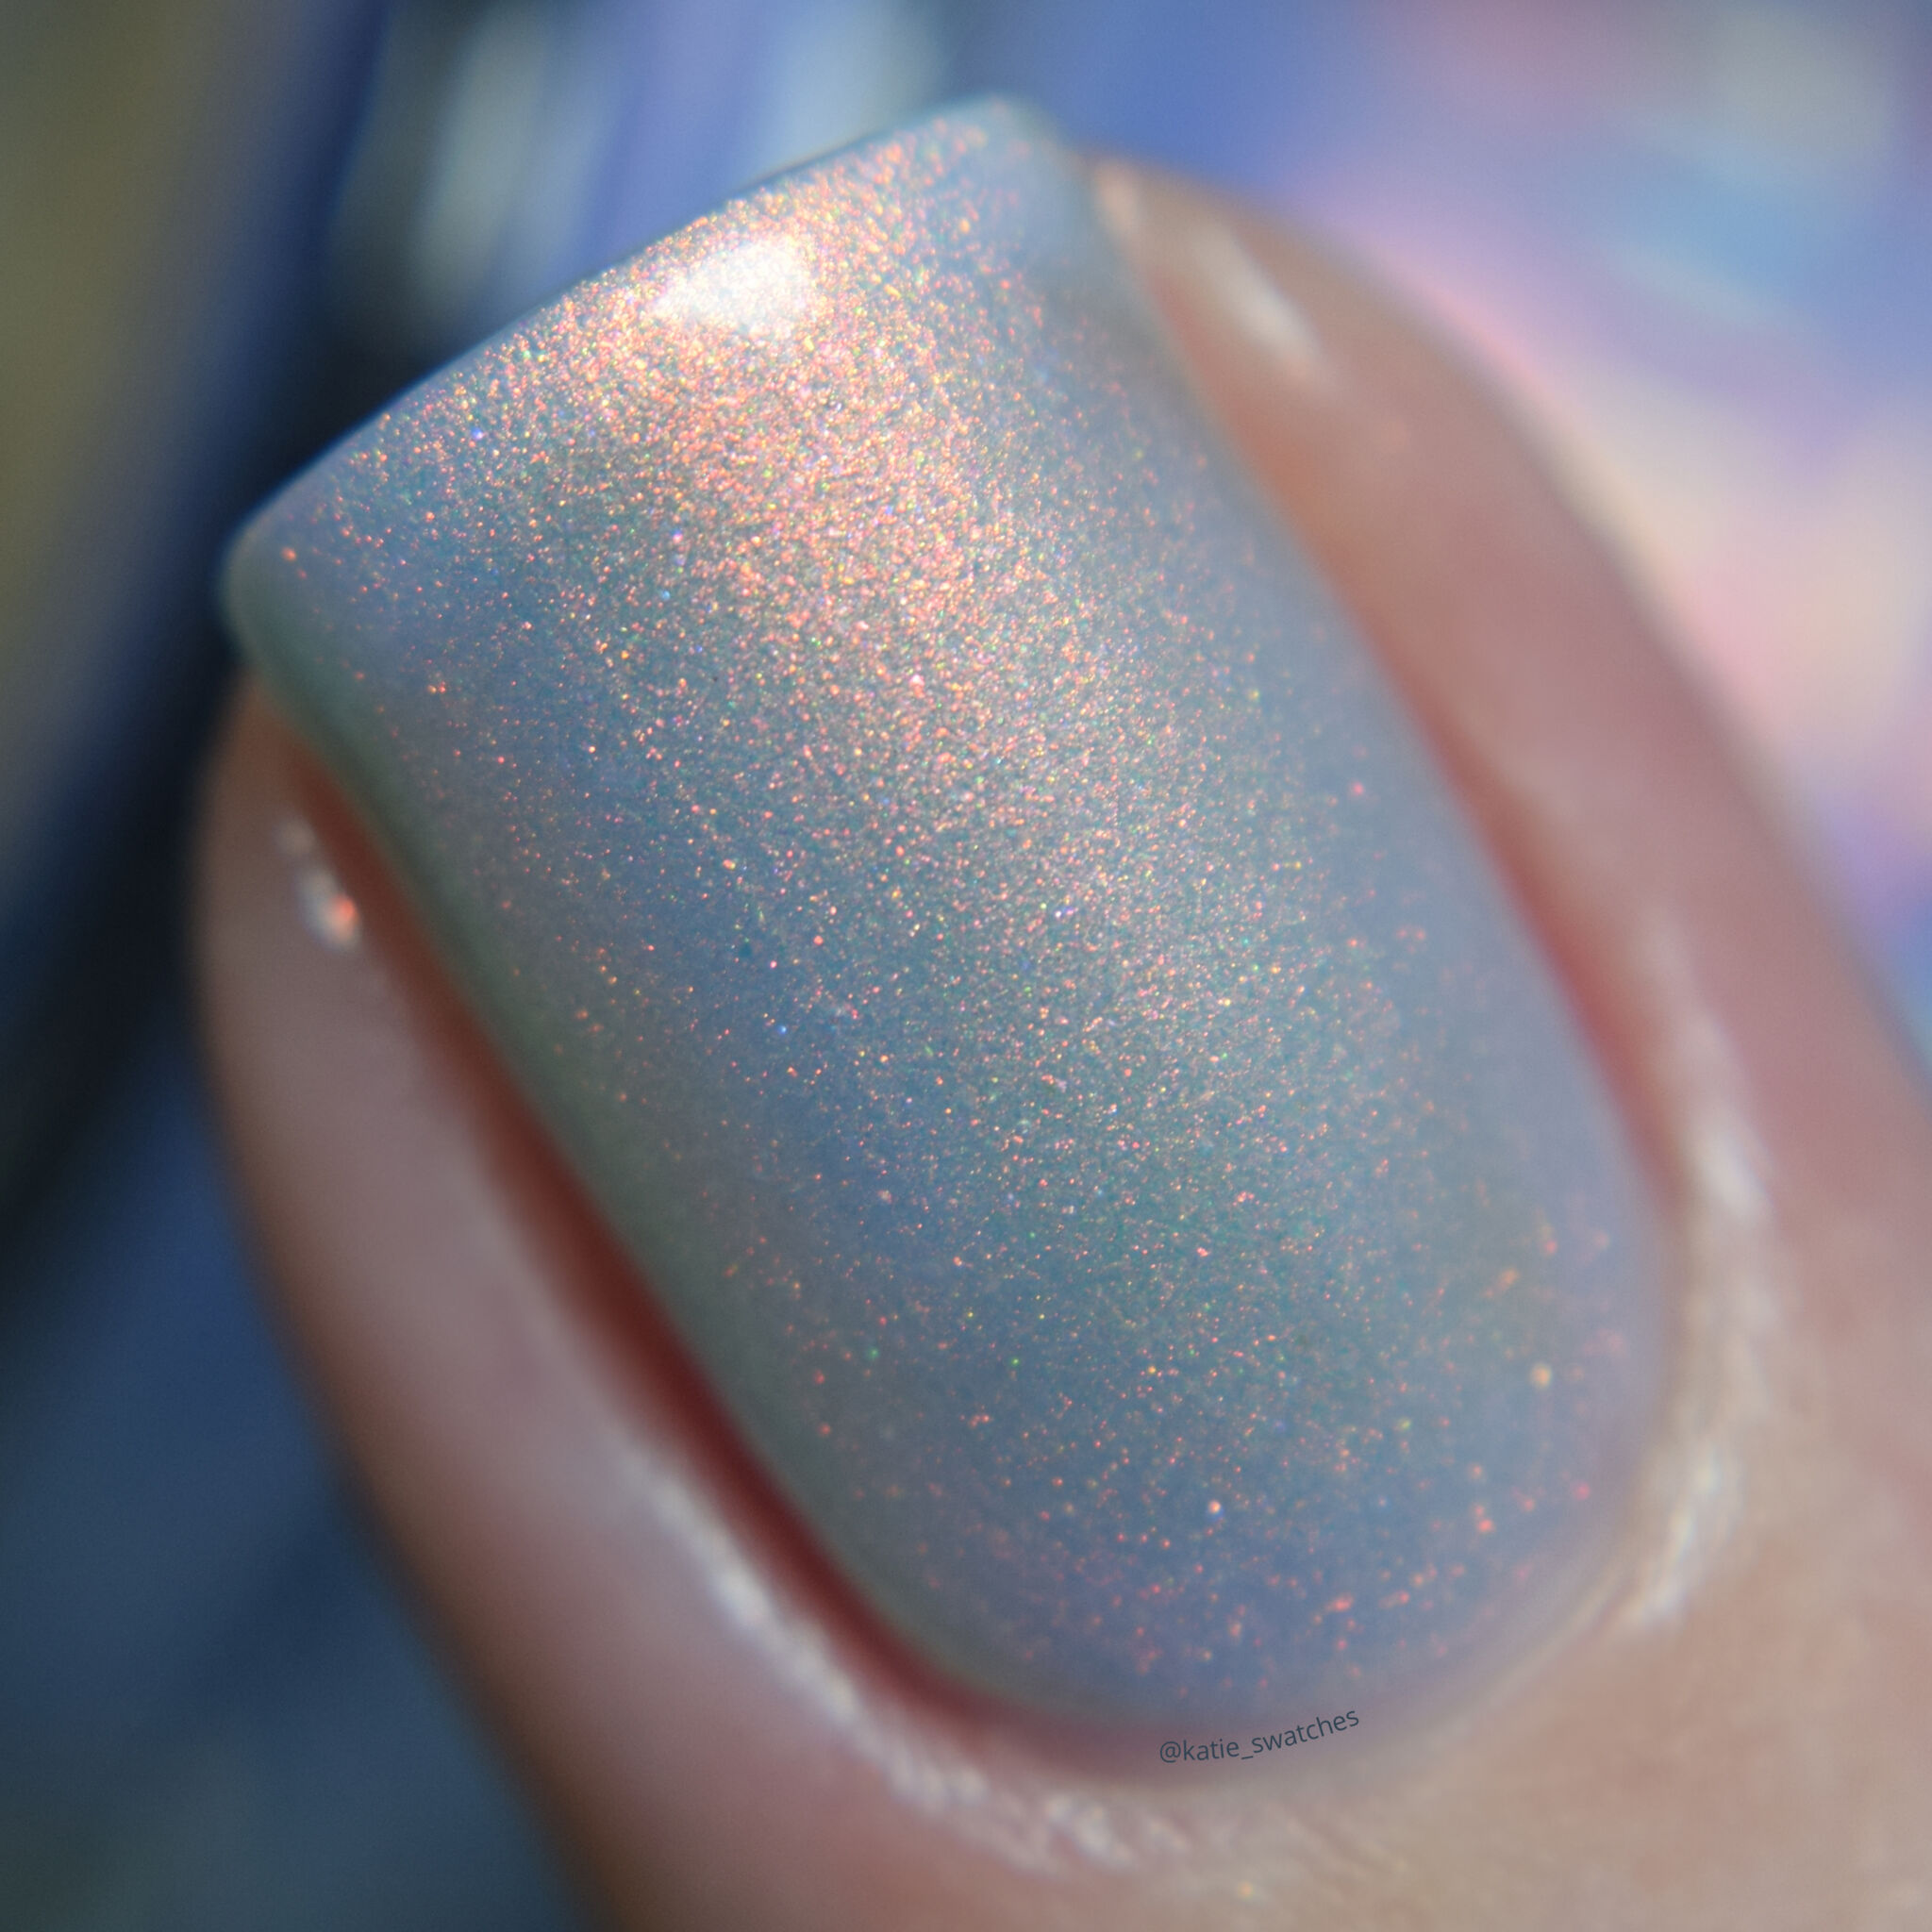 Ethereal Lacquer Under the Sea pale marine blue nail polish with pastel copper-pink shimmer - Polish Pickup PPU November 2019, PPU Rewind 2020 - indie nail polish swatch macro